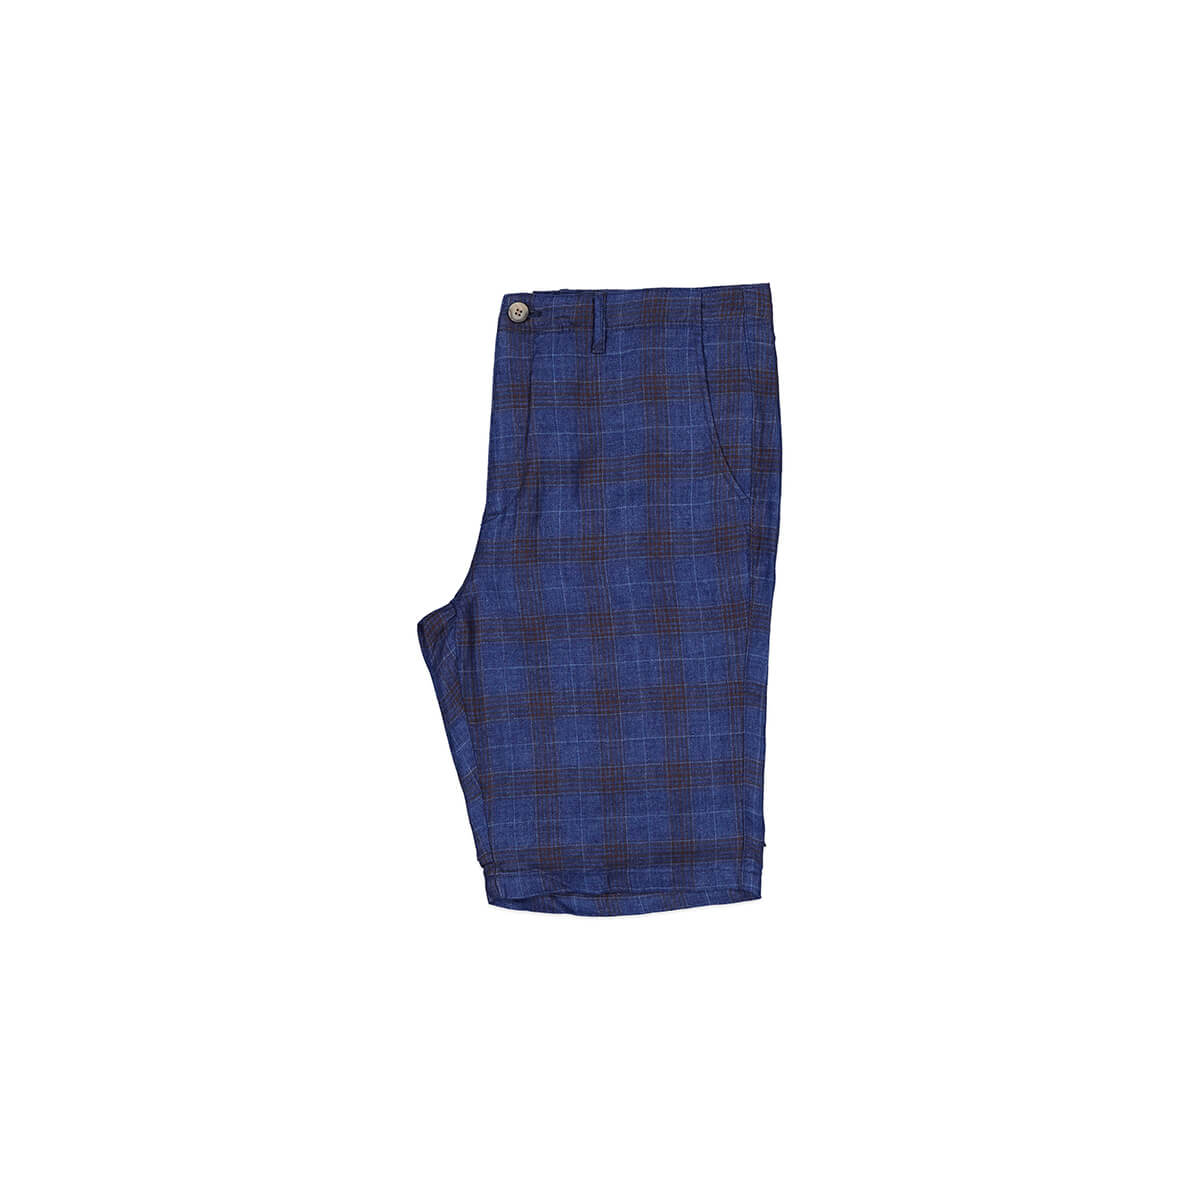 Blue checkered shorts from New Zealand menswear brand Working Style